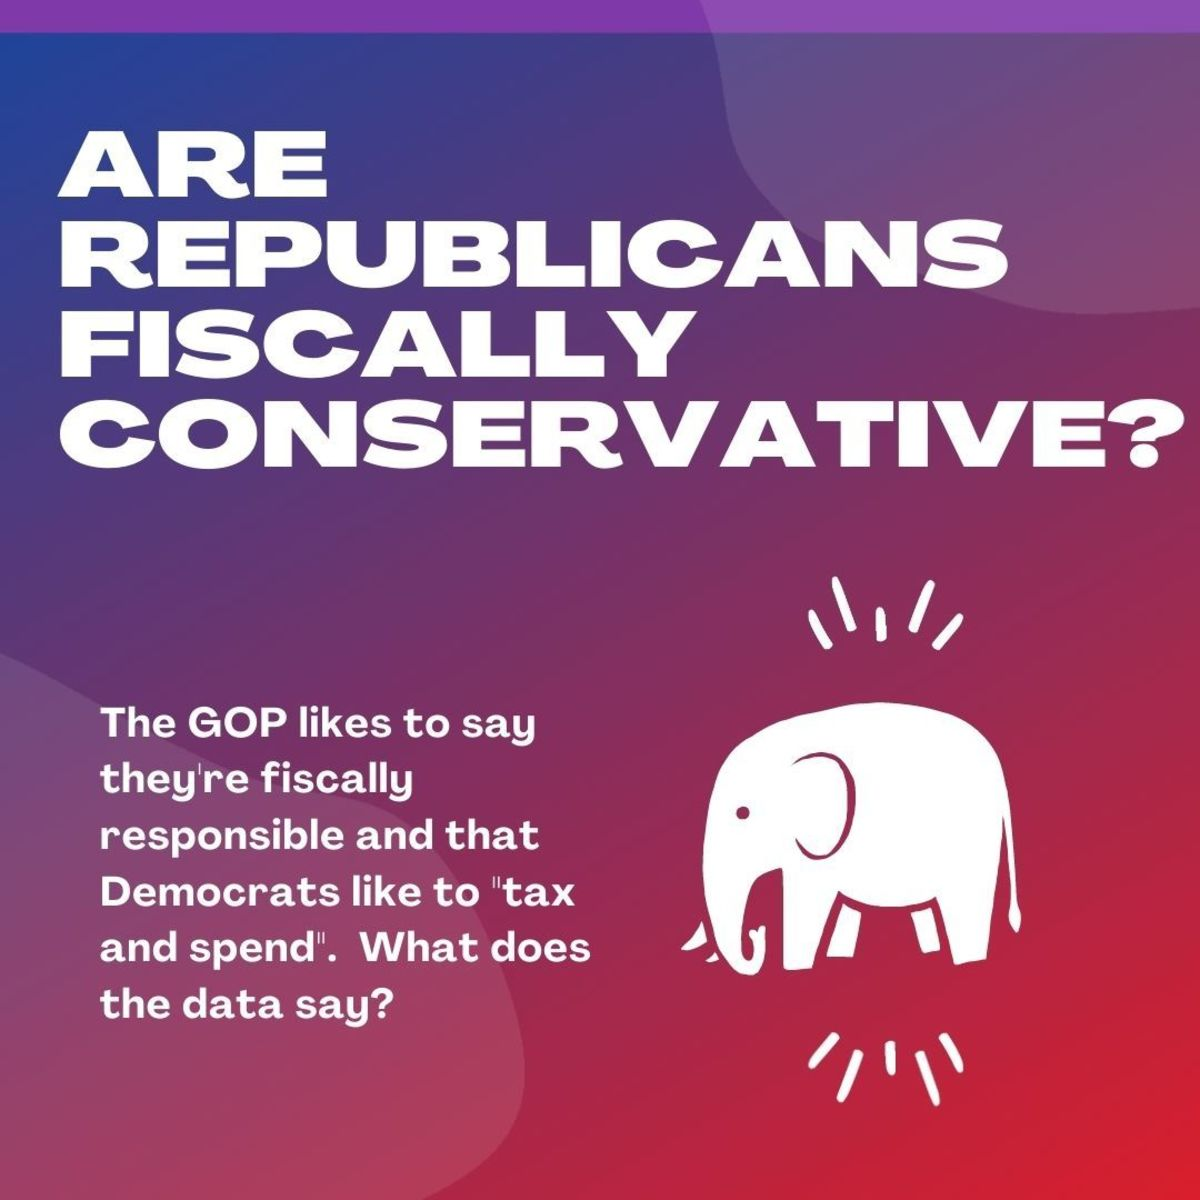 "The GOP likes to say they're fiscally responsible and that Democrats like to ""tax and spend"".  But what does the data say?"